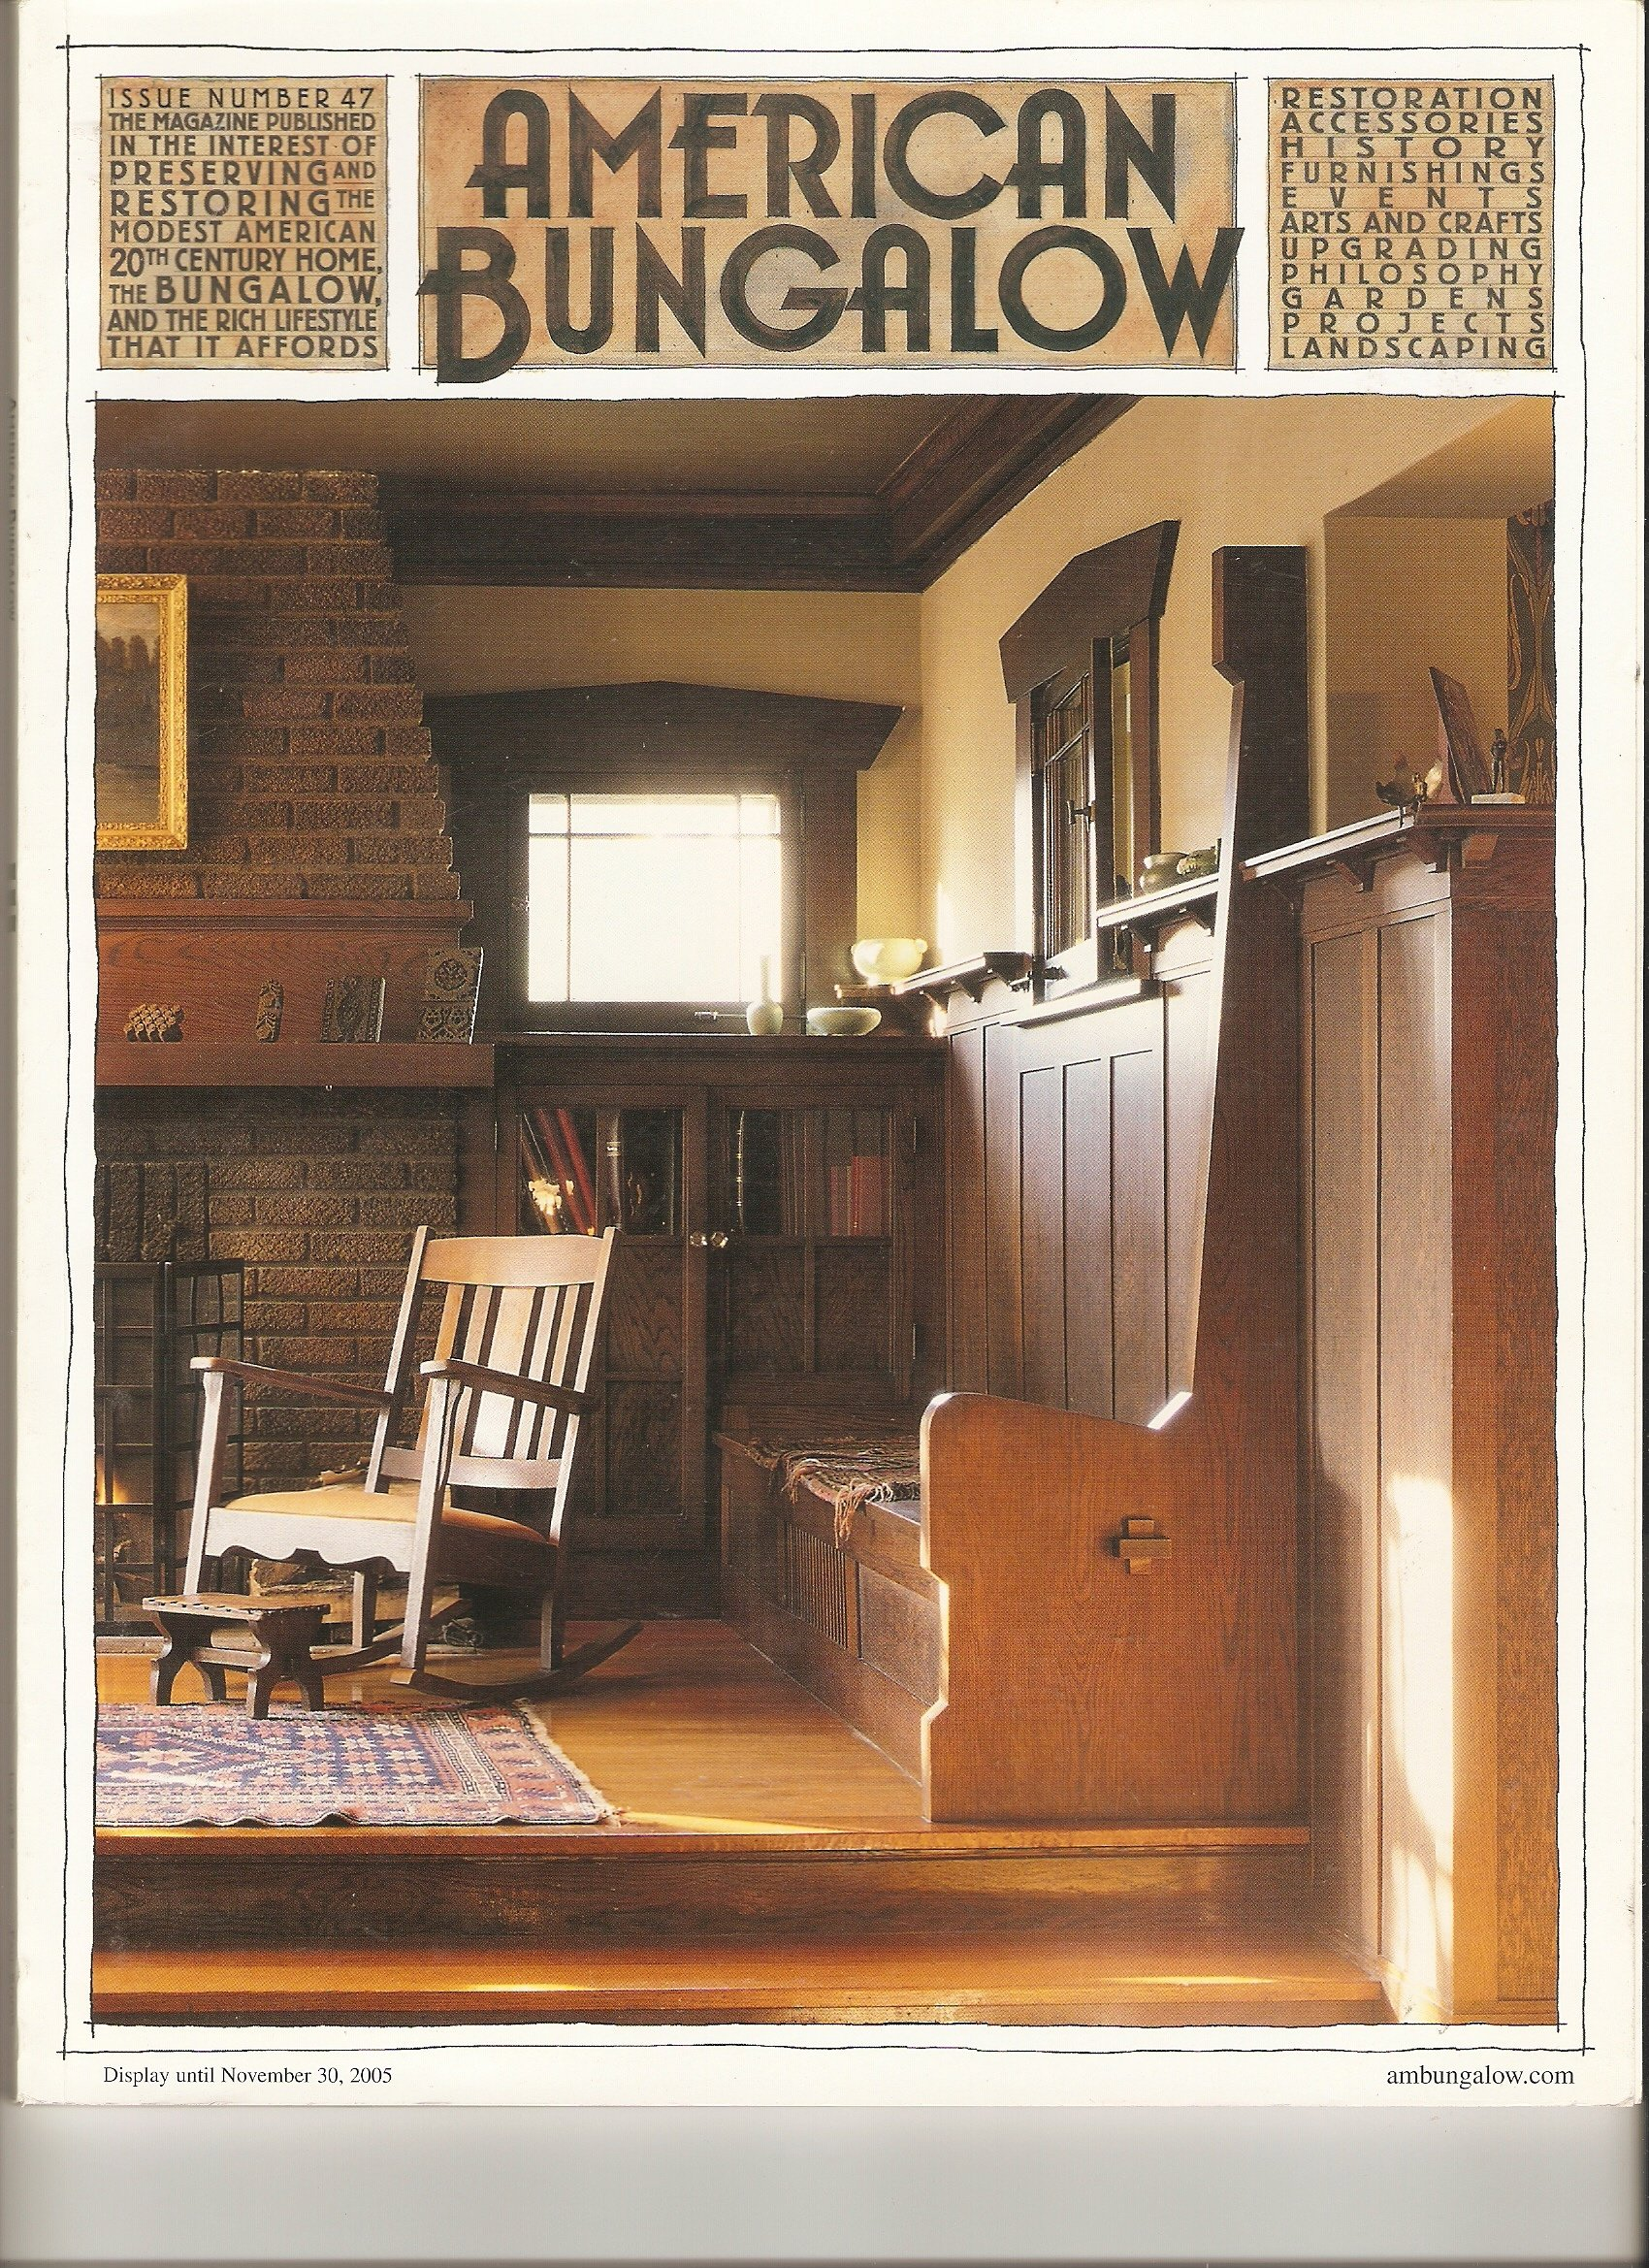 Download AMERICAN BUNGALOW Magazine, Fall 2005 Mail Order Houses and Arts and Crafts (Issue 47) PDF